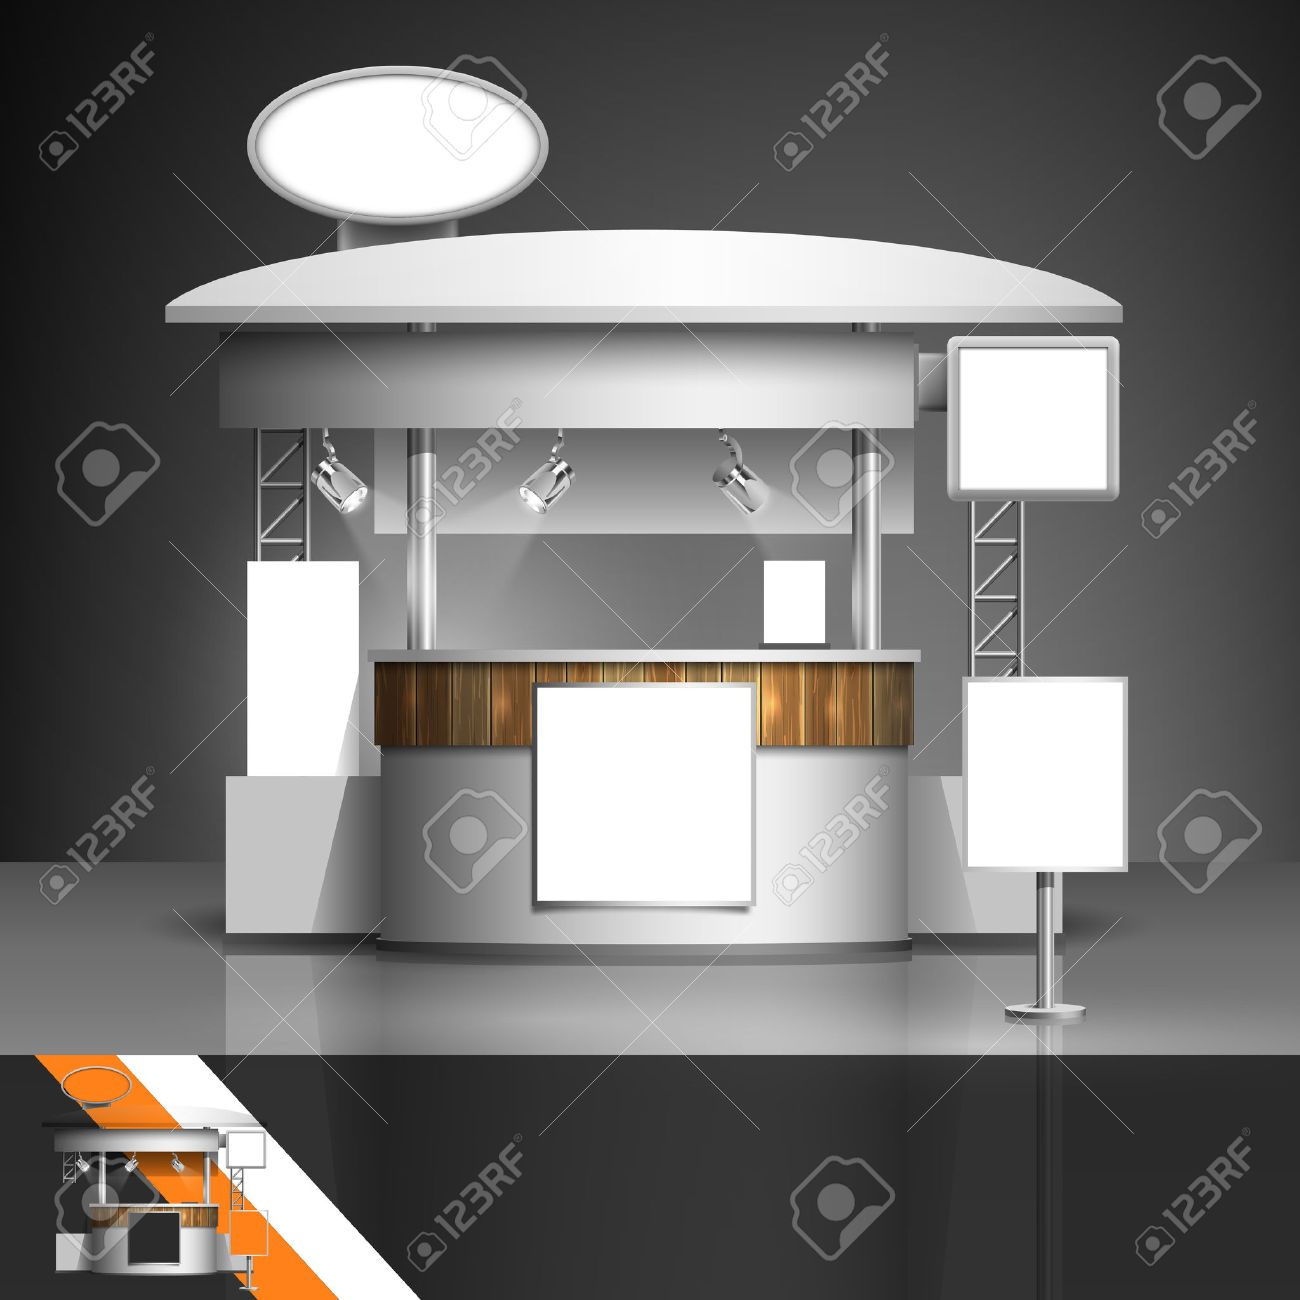 Exhibition Stand Free Vector : Template for advertising and corporate identity. exhibition stand